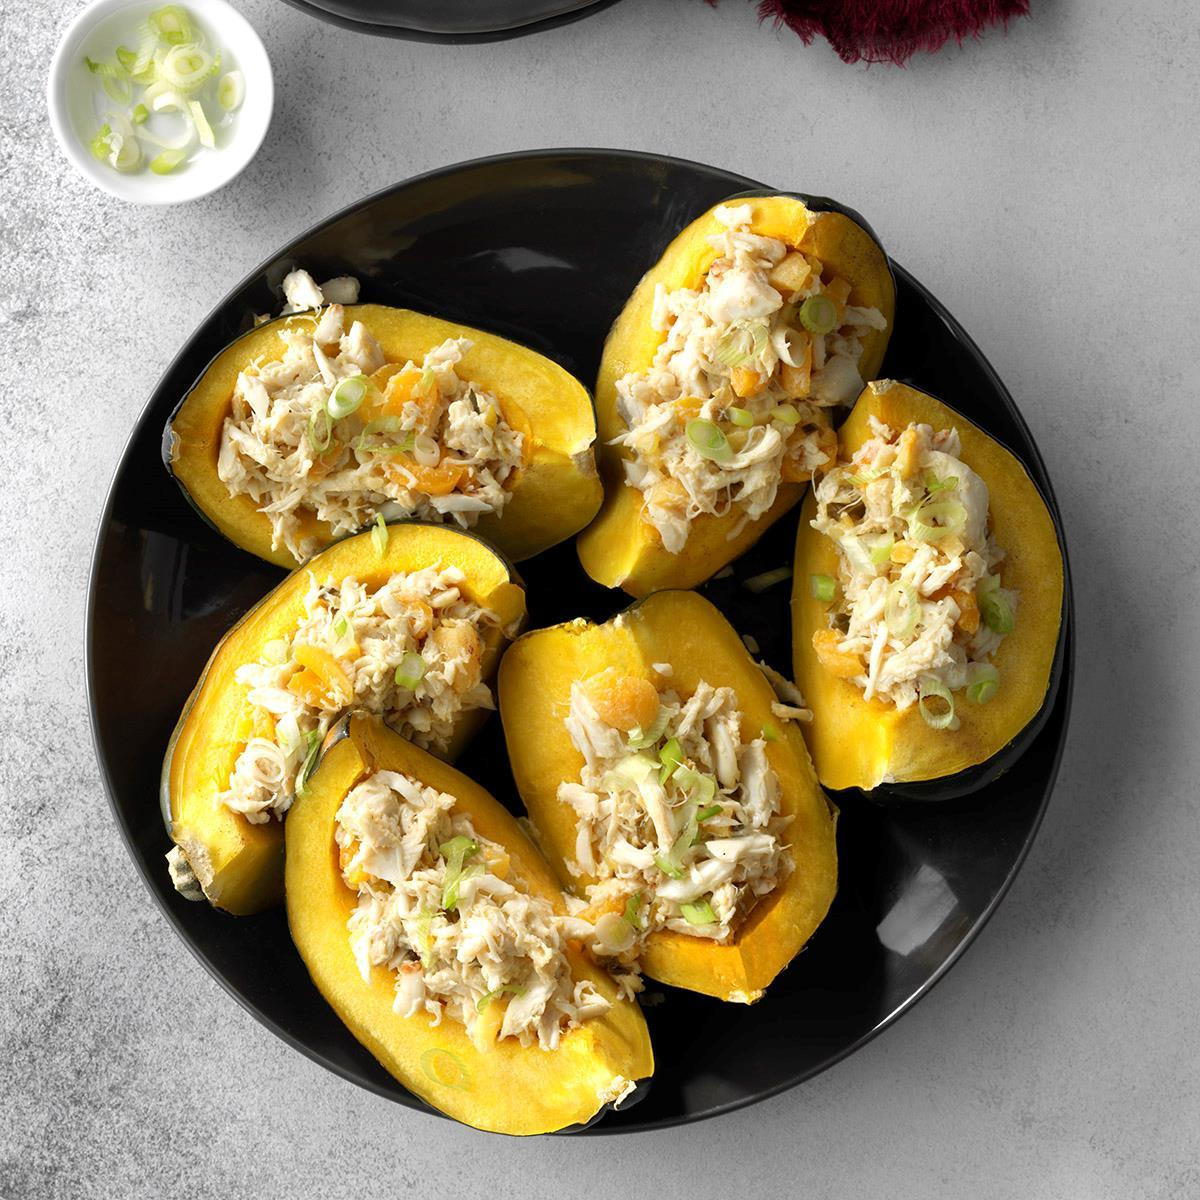 Apricot Crab Stuffed Acorn Squash. #recipe #eat https://t.co/9Wtuiqmkw2 https://t.co/AdNyabhmea